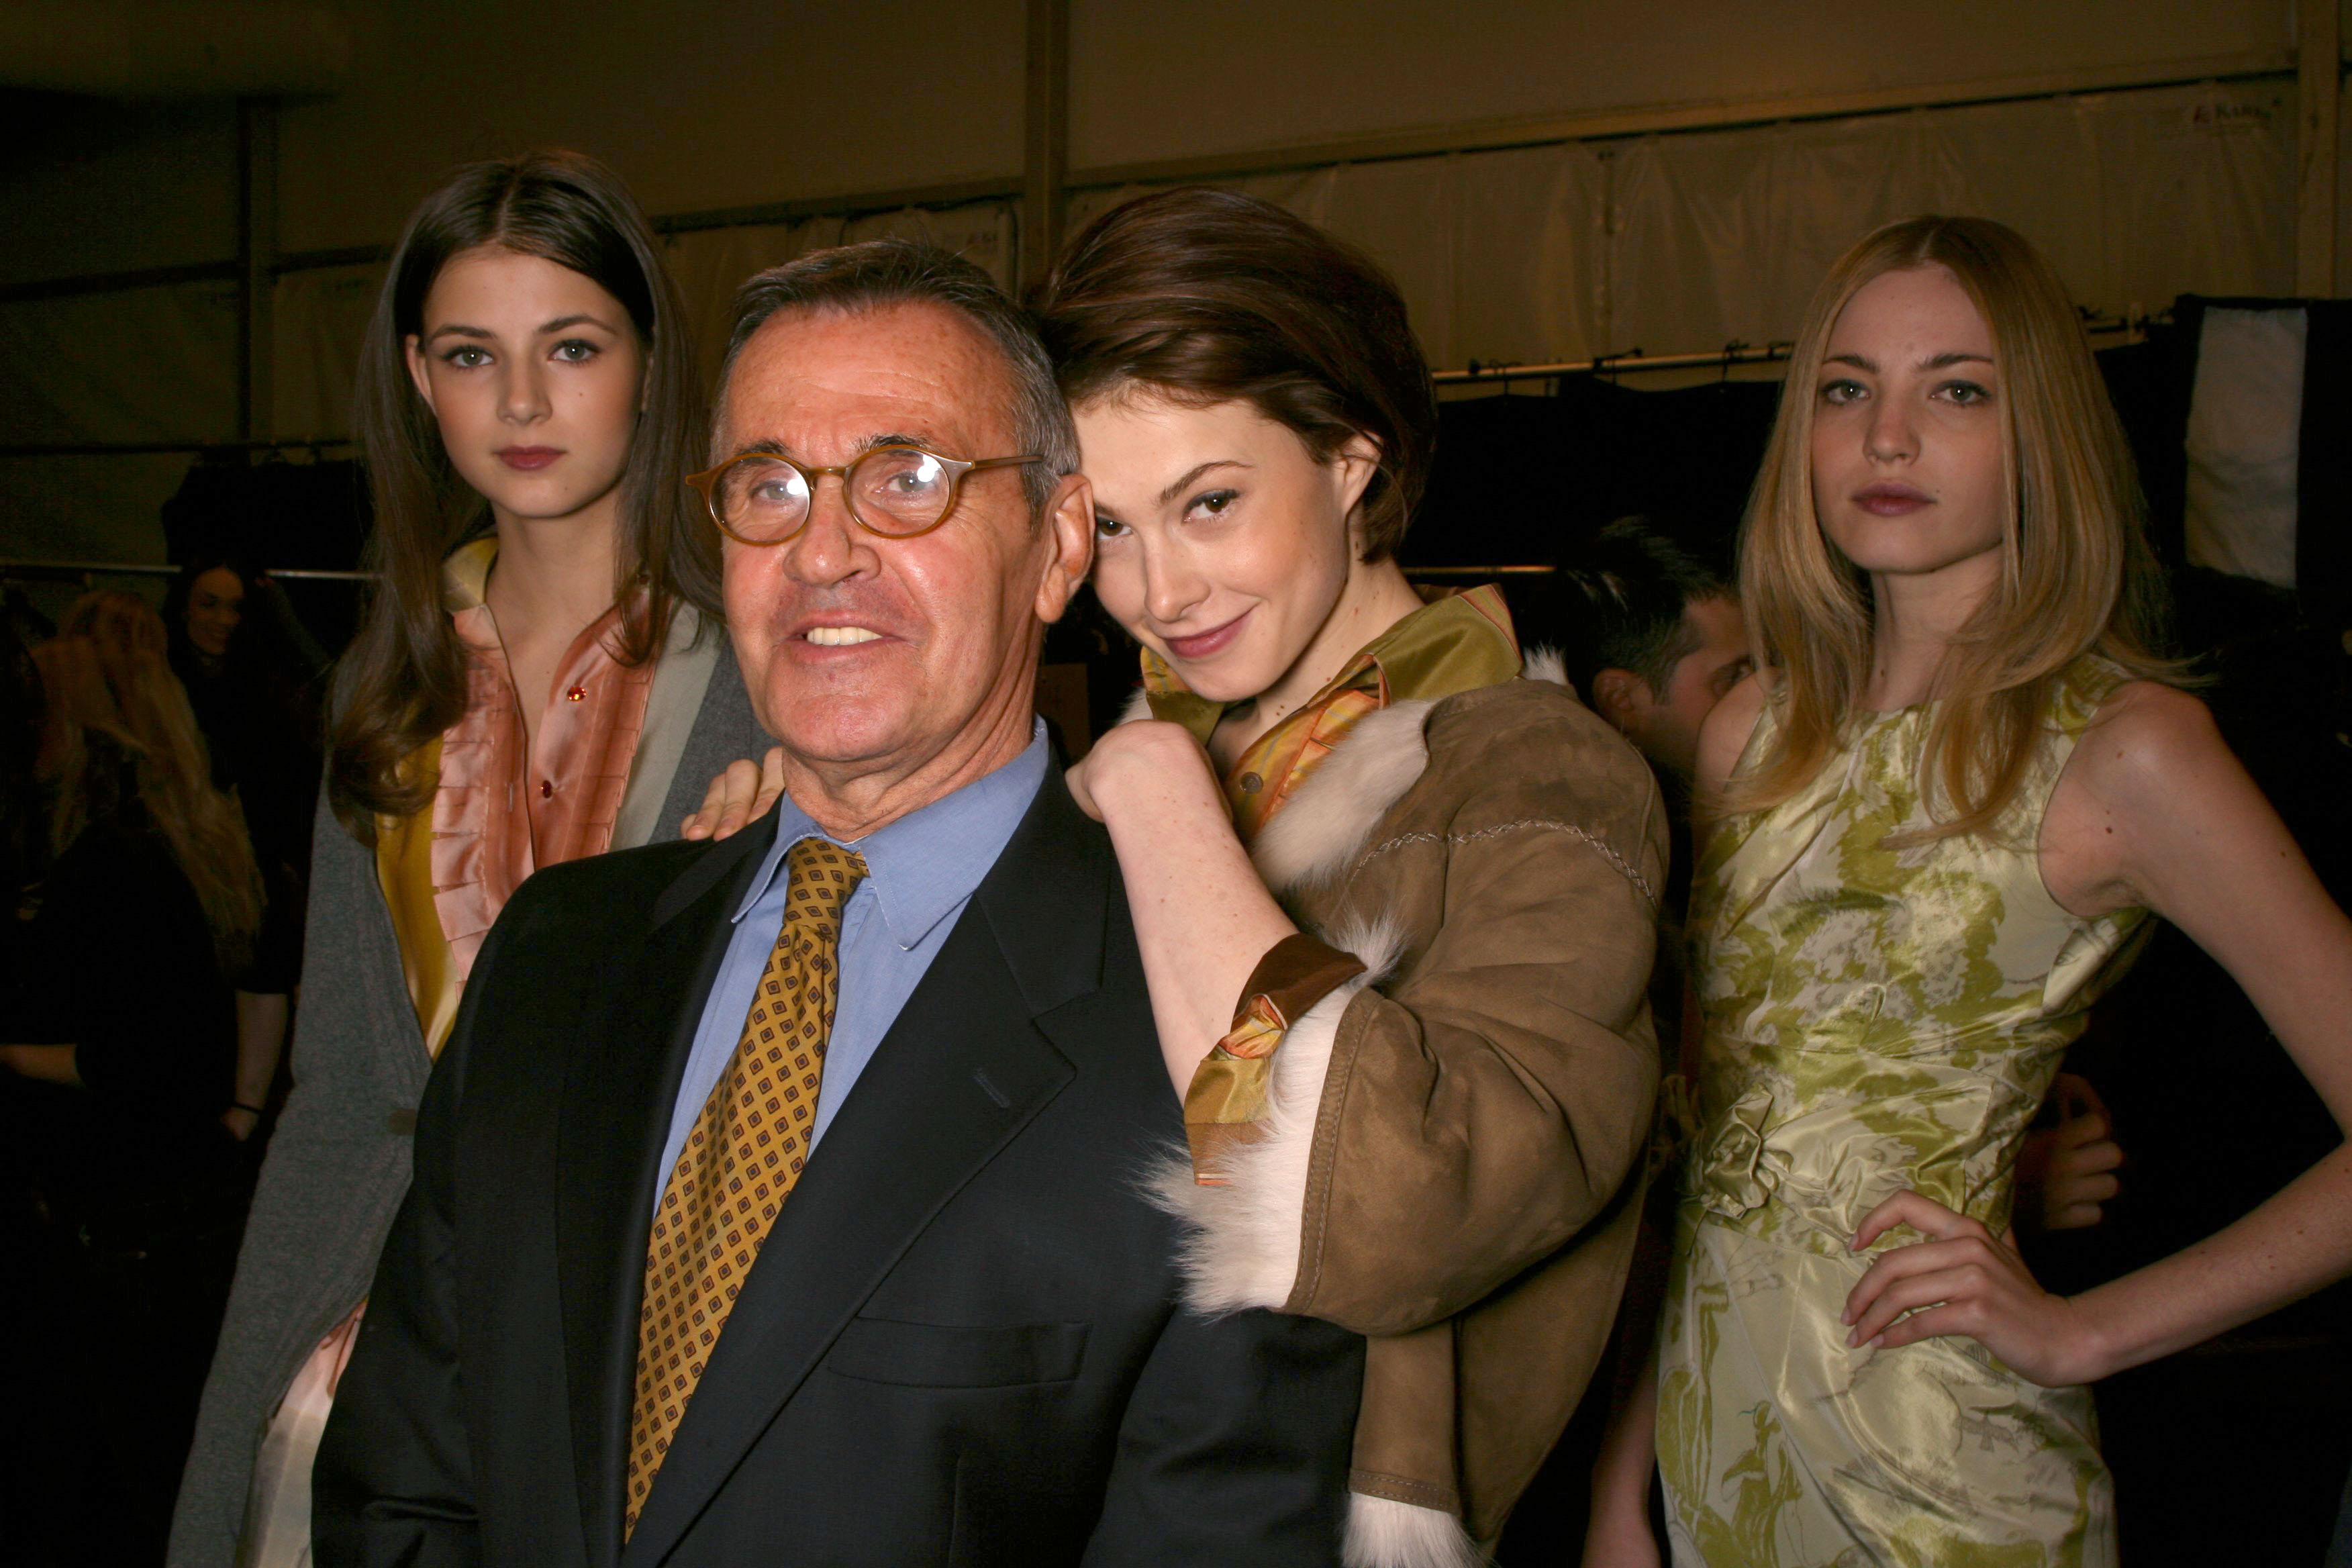 Michael VollbrachB, Elettra Ingrid, and Wiedemann Rossellini at Bill Class' Fall 2006 fashion week show.